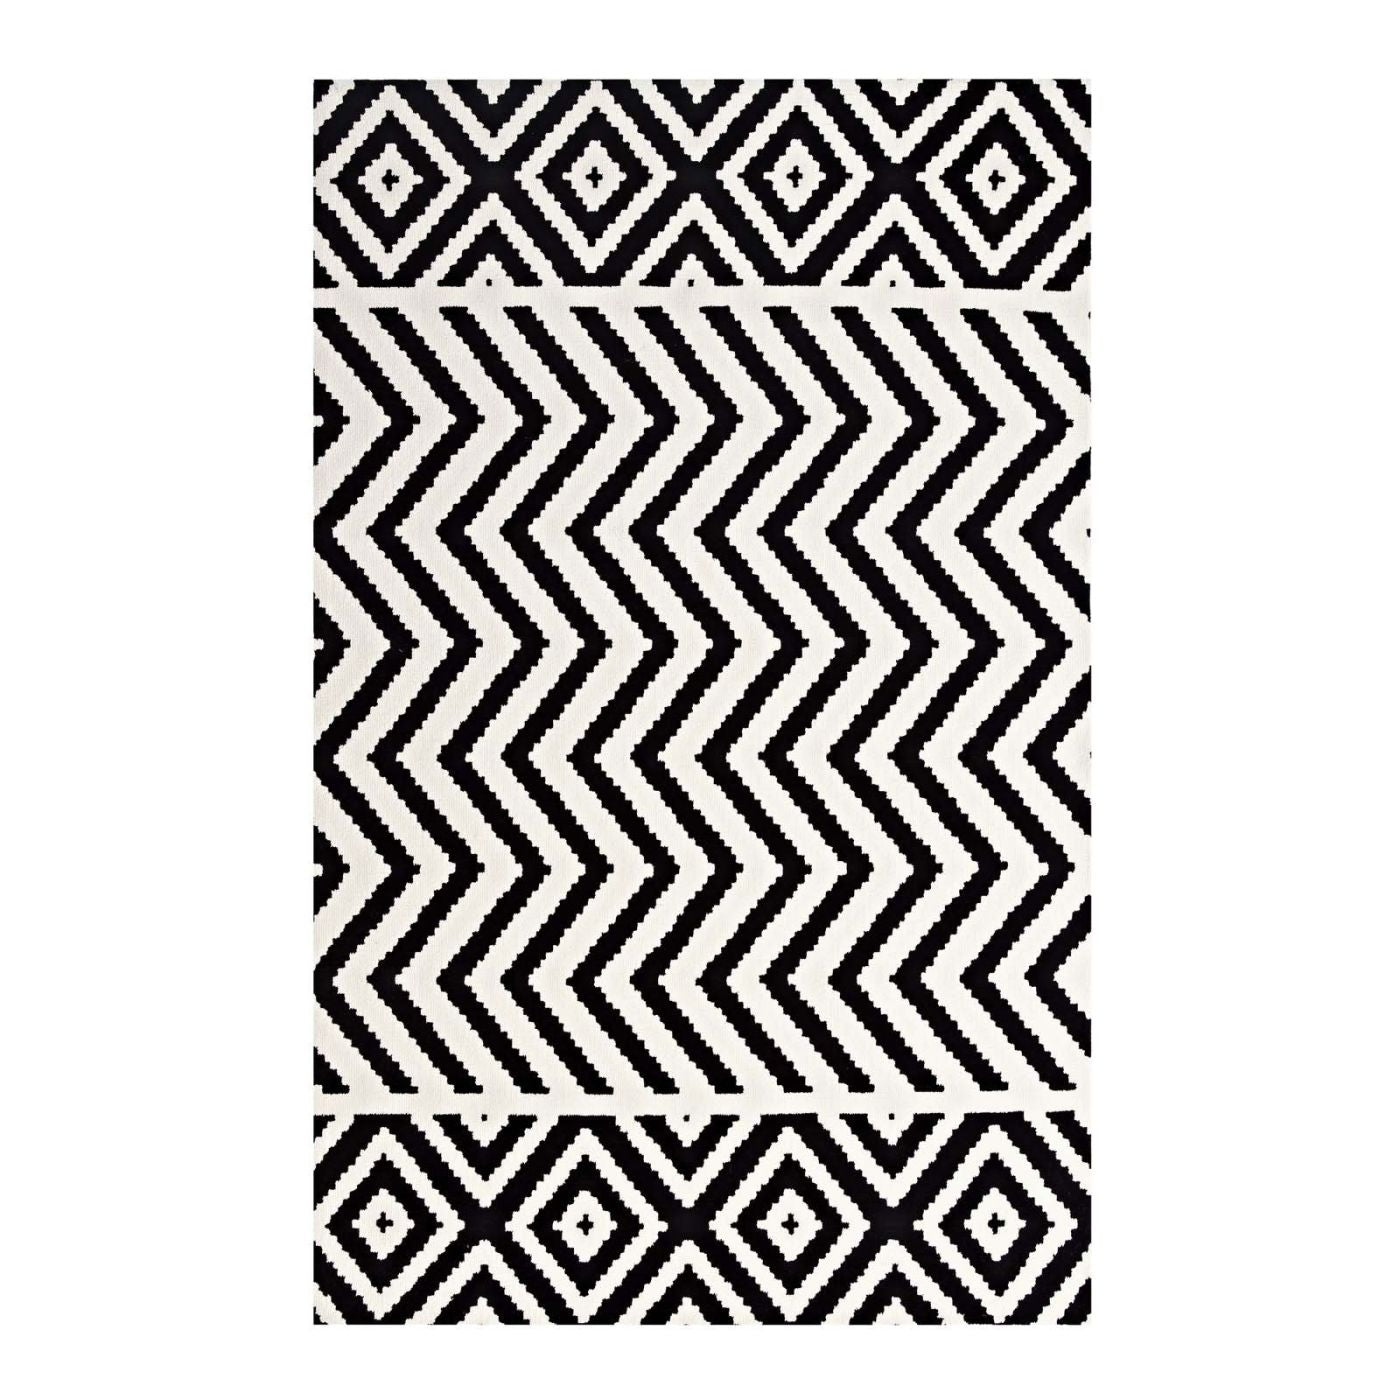 Black And White Geometric Rugs For Sale: Modway Rugs On Sale. R-1011A-58 Ailani Geometric Chevron